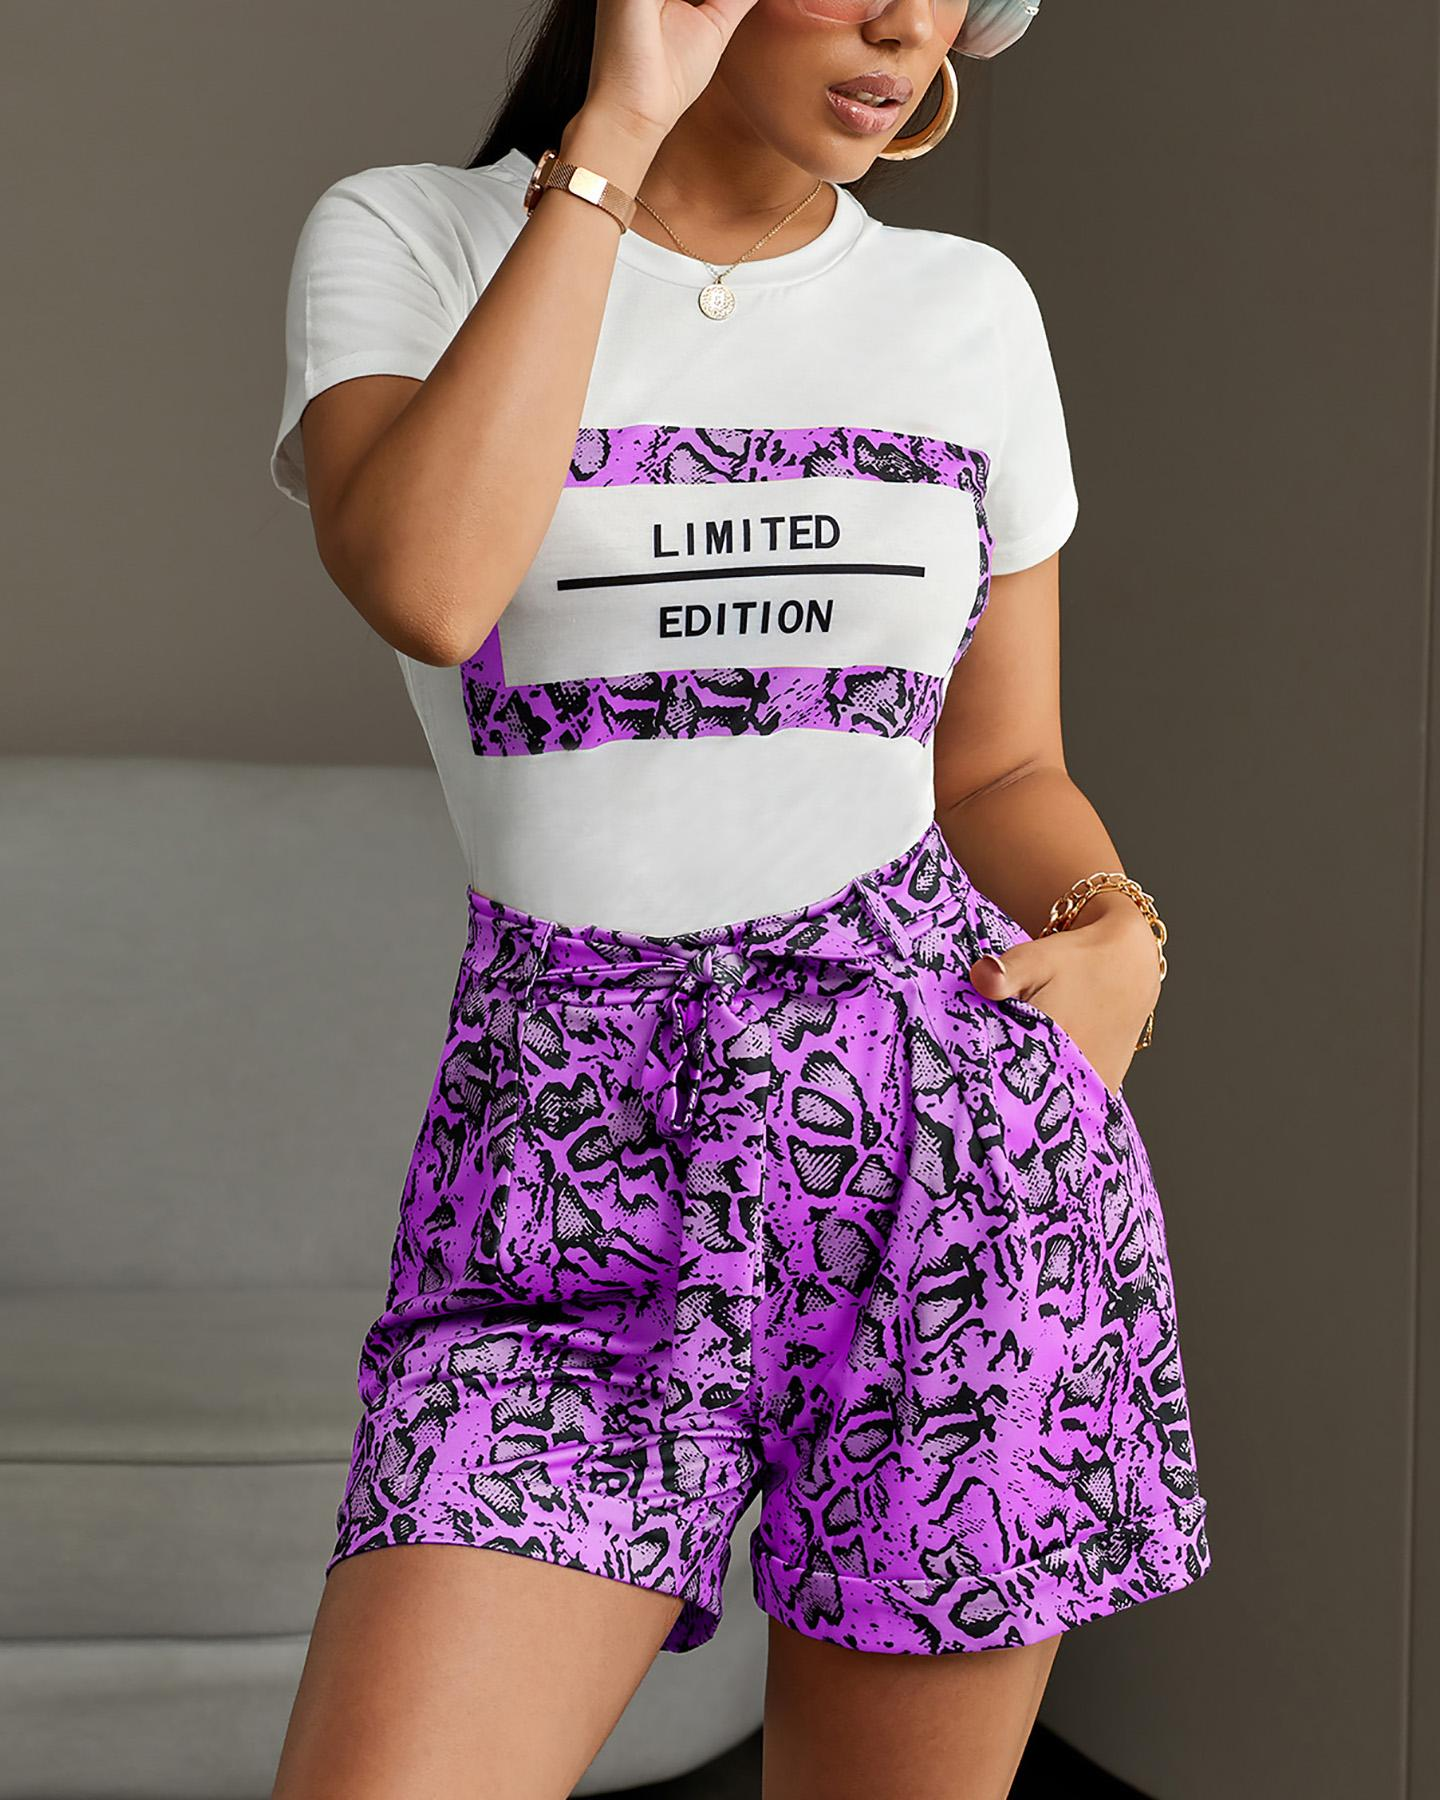 Letter Short Sleeve Tee With Snakeskin Shorts Sets thumbnail